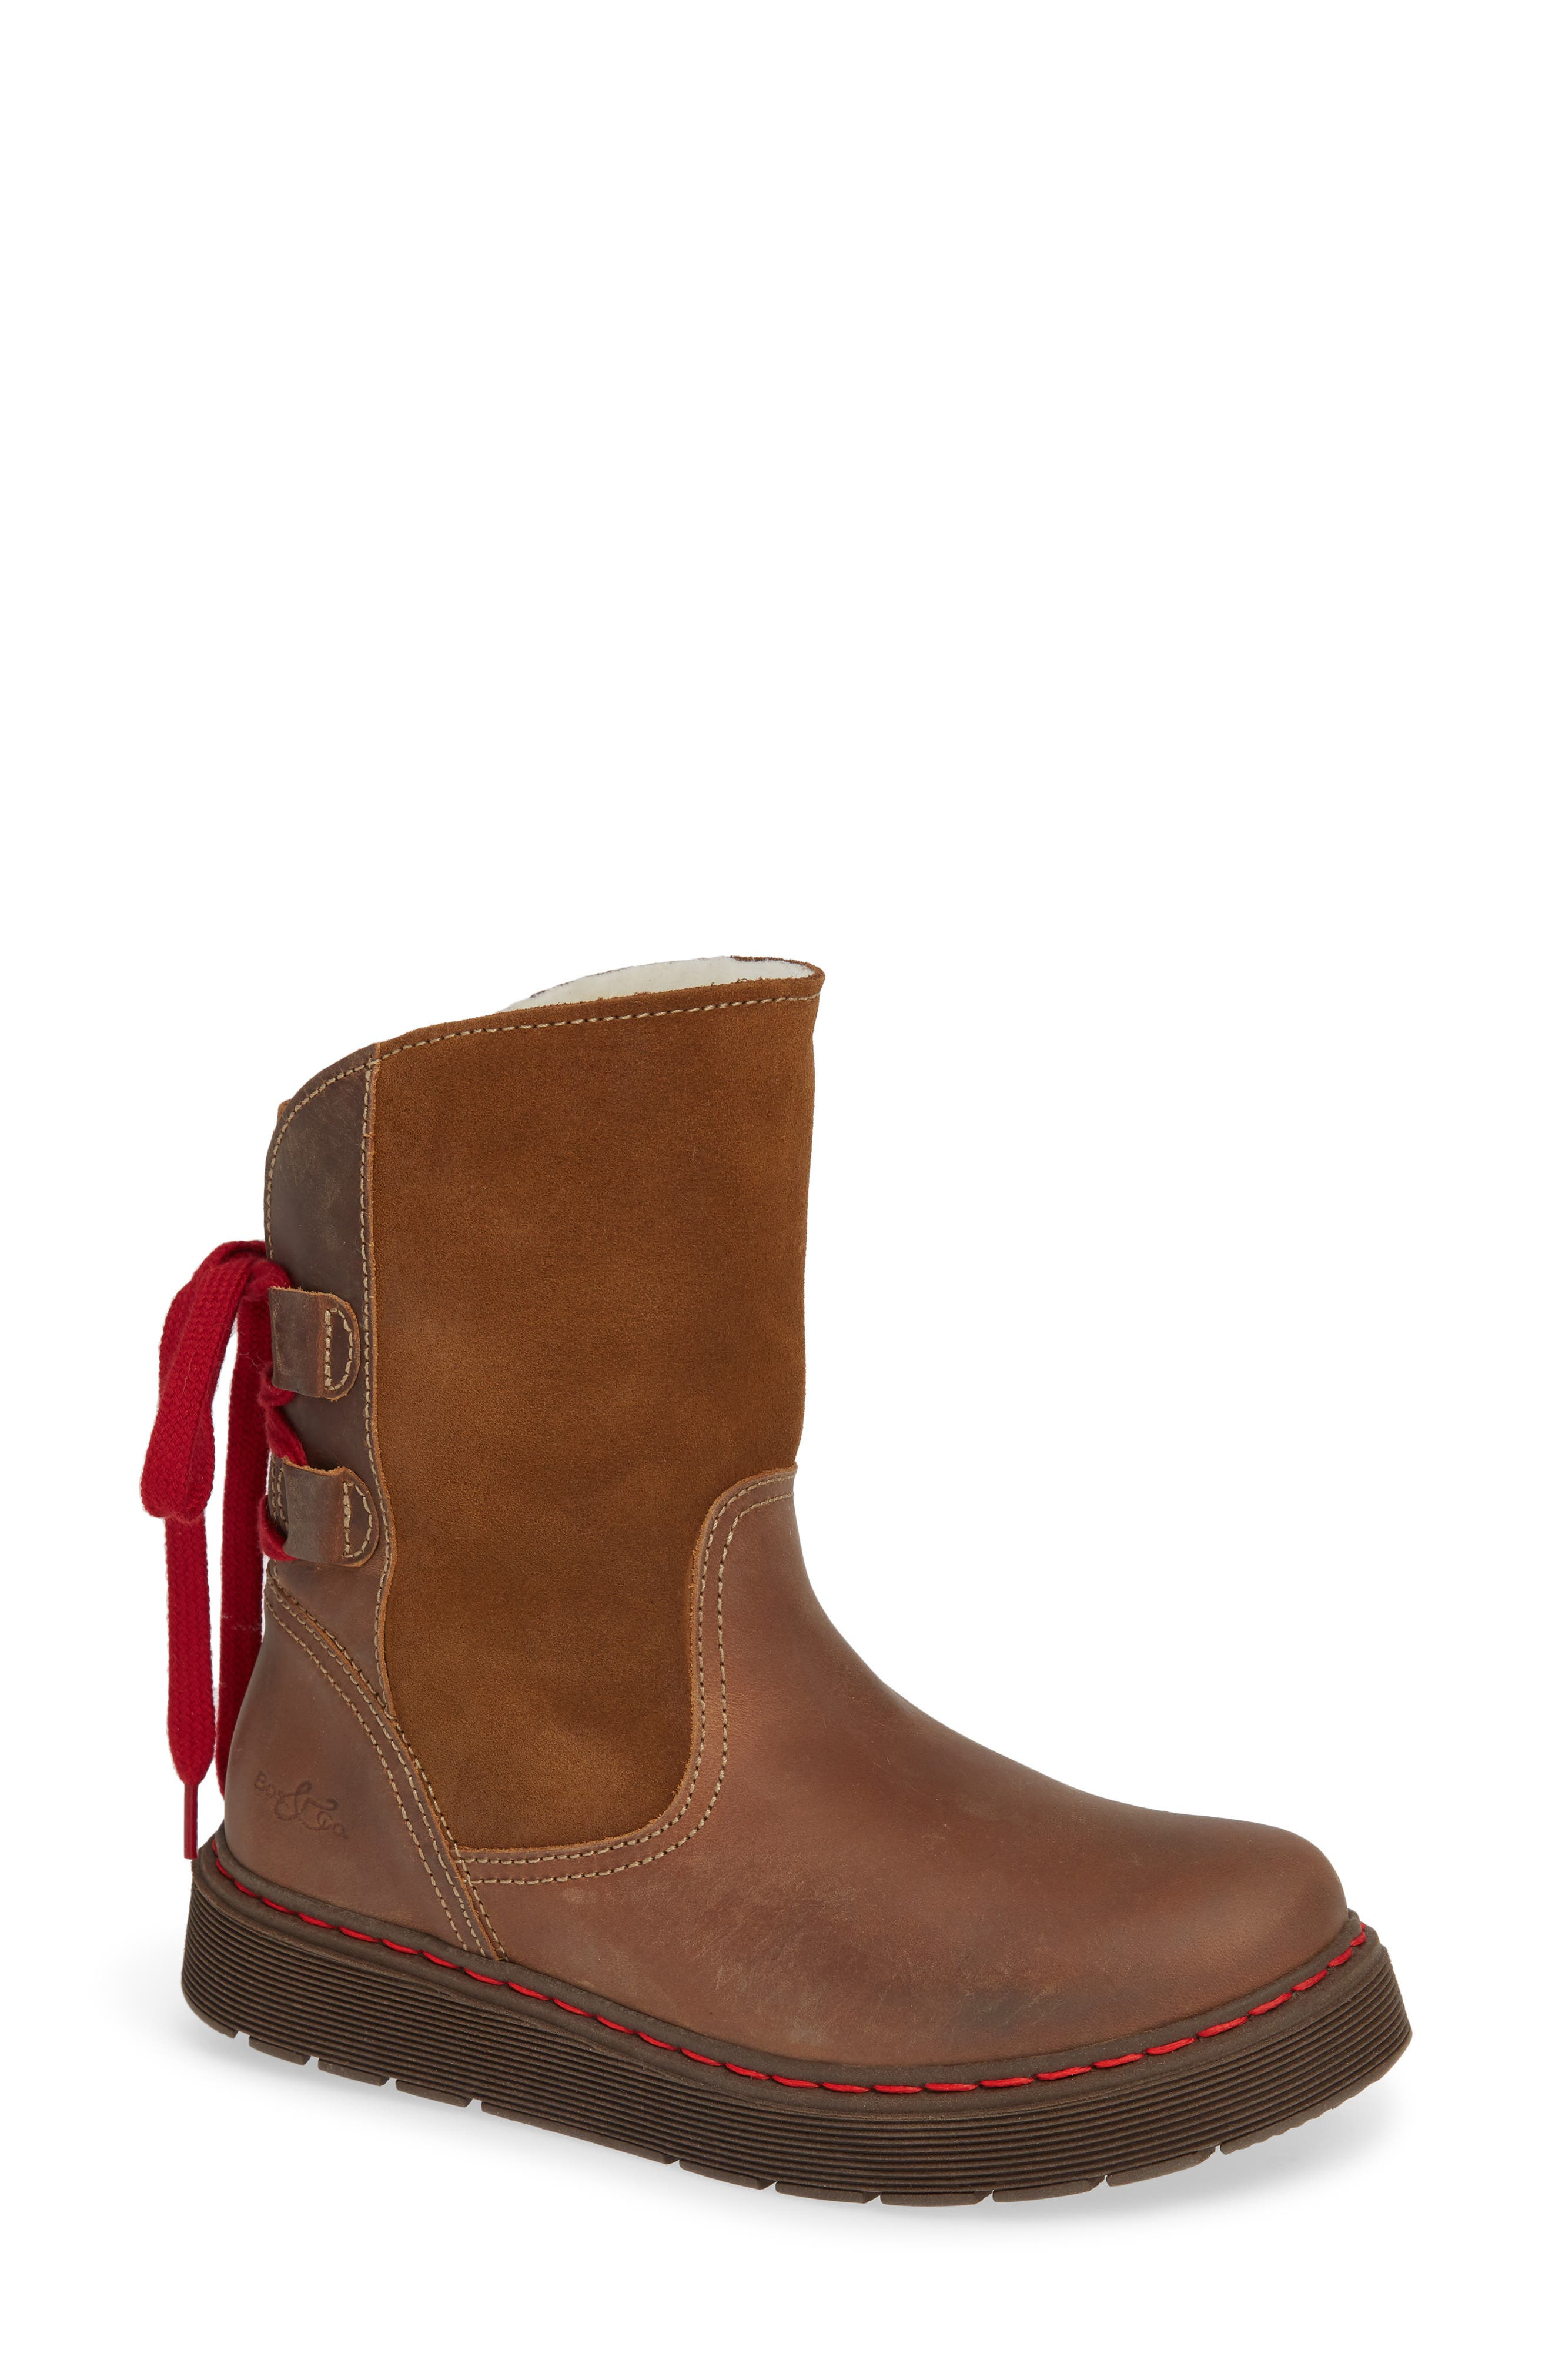 Bos. & Co. Omega Waterproof Lace-Back Boot - Brown